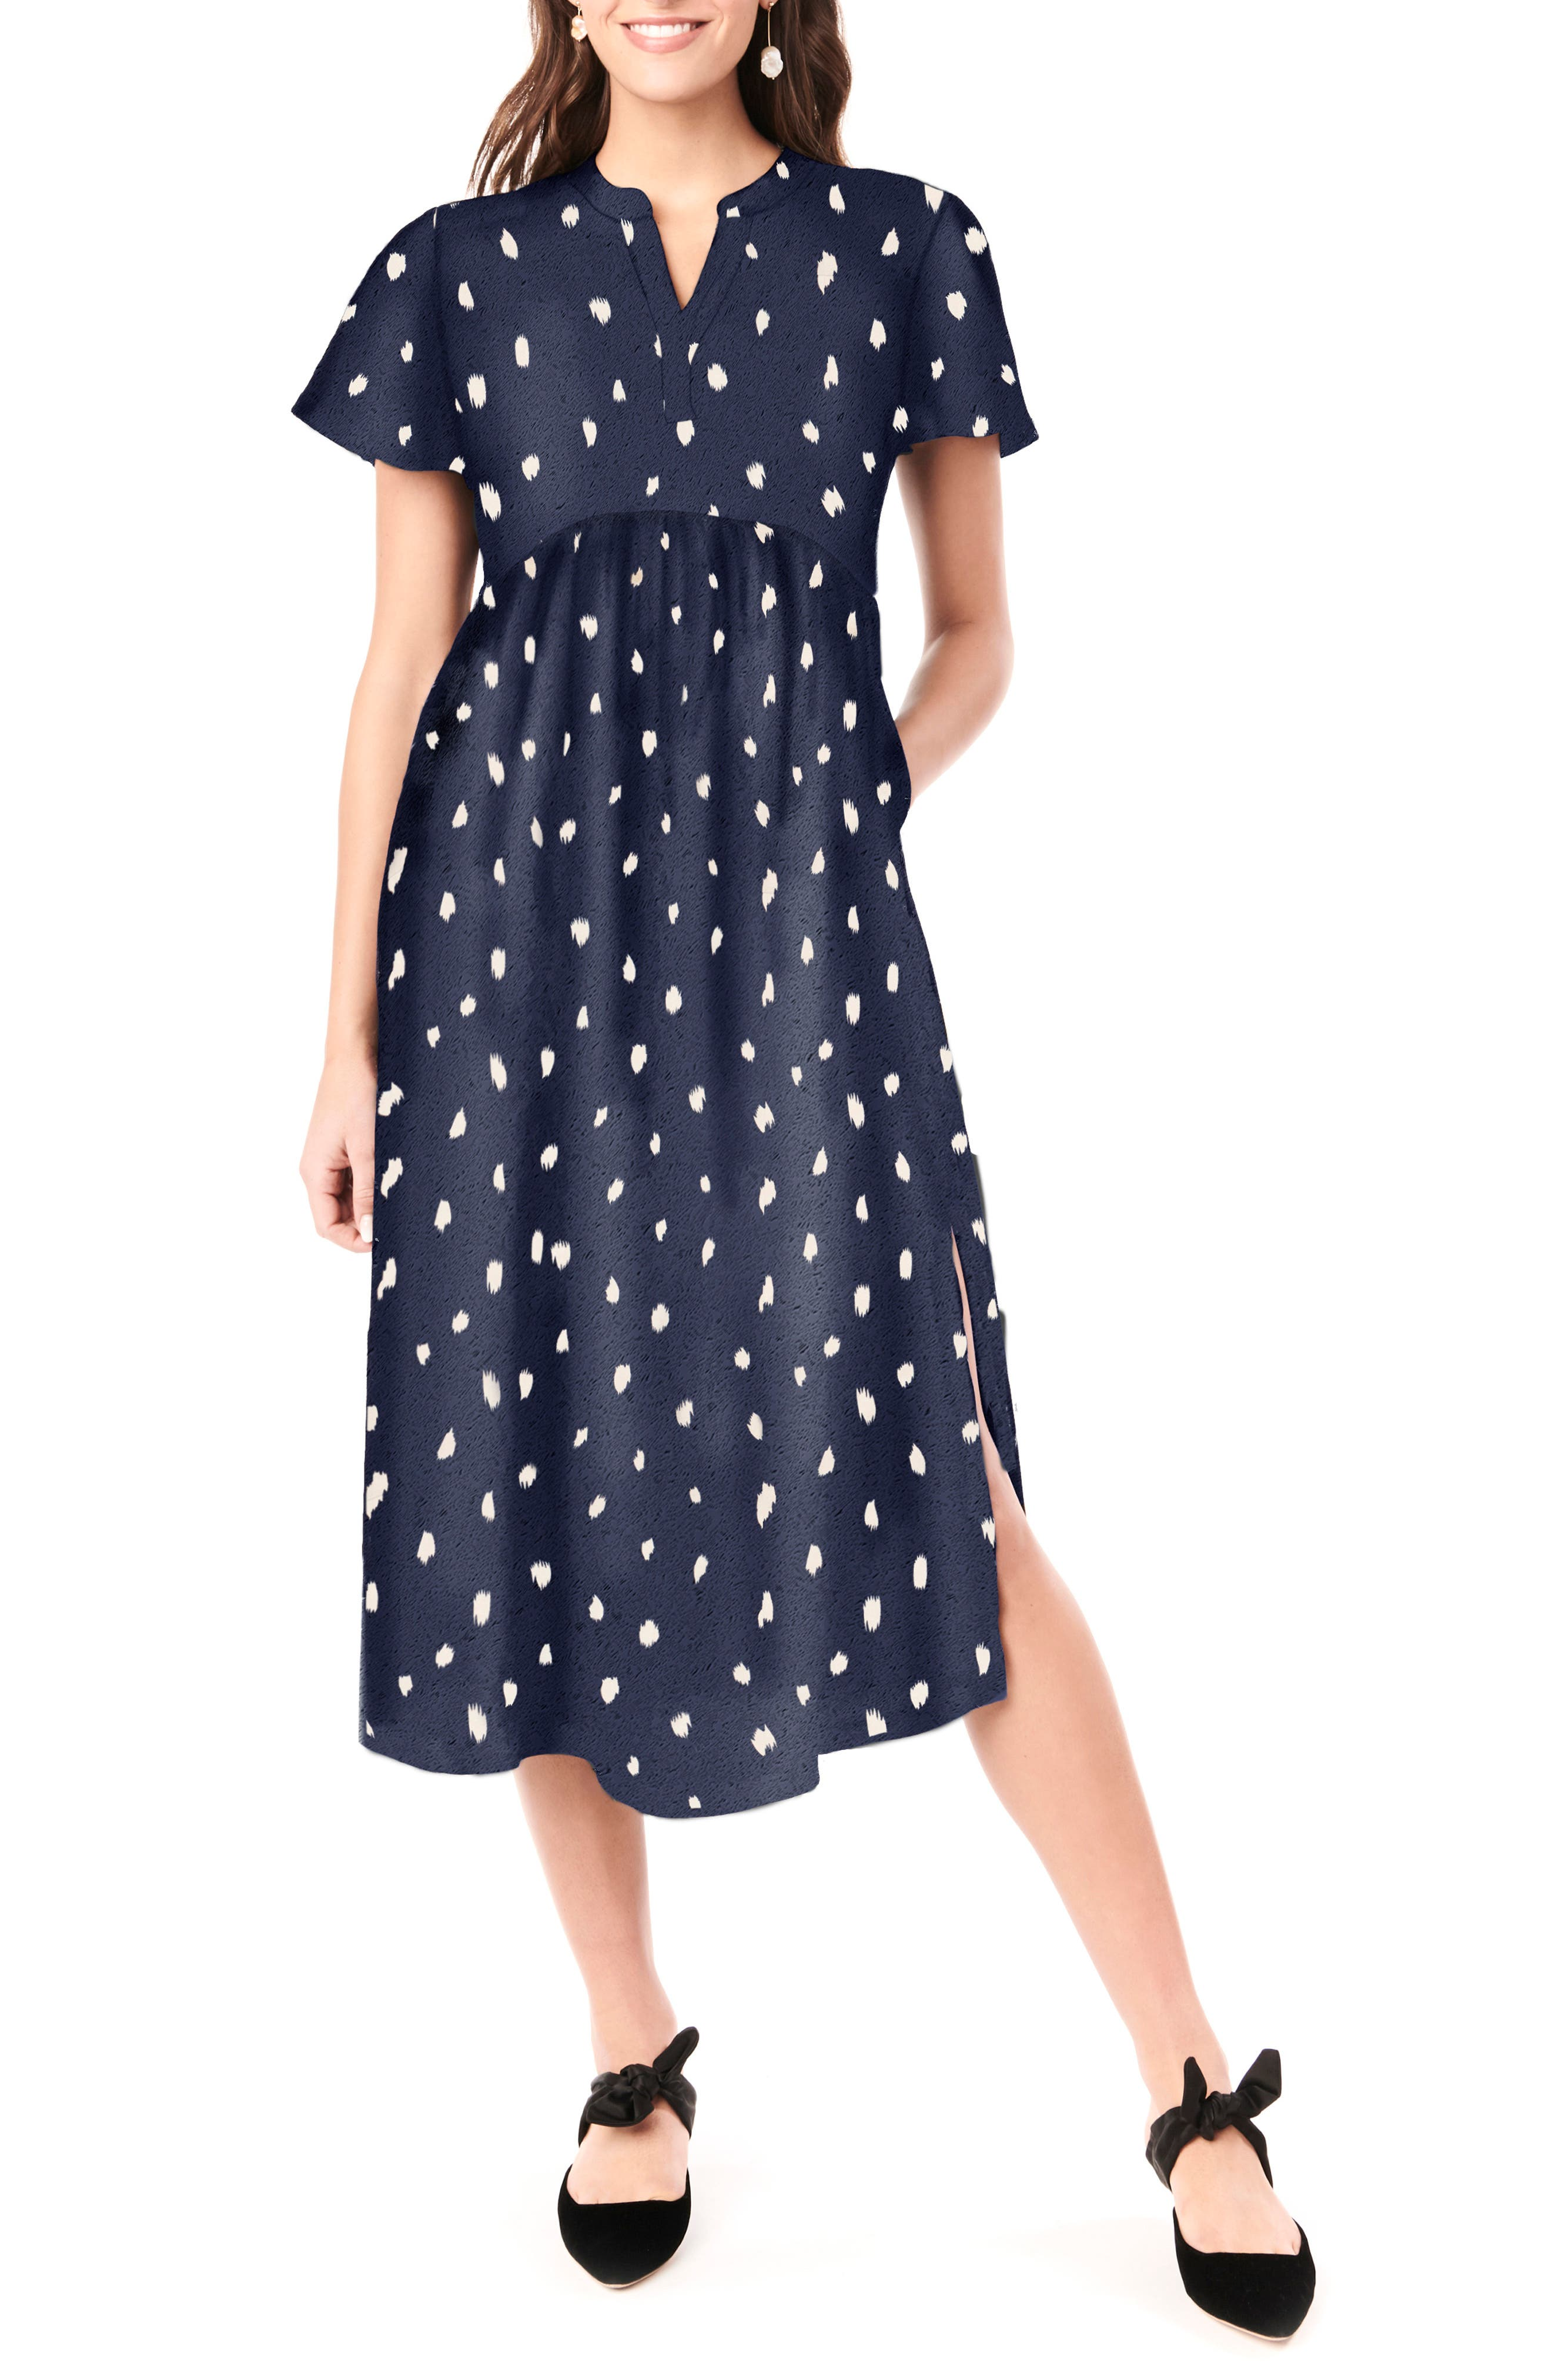 Vintage Maternity Dresses and Clothes Womens Loyal Hana Lily Flutter Sleeve Maternity Midi Dress Size Small - Blue $150.00 AT vintagedancer.com